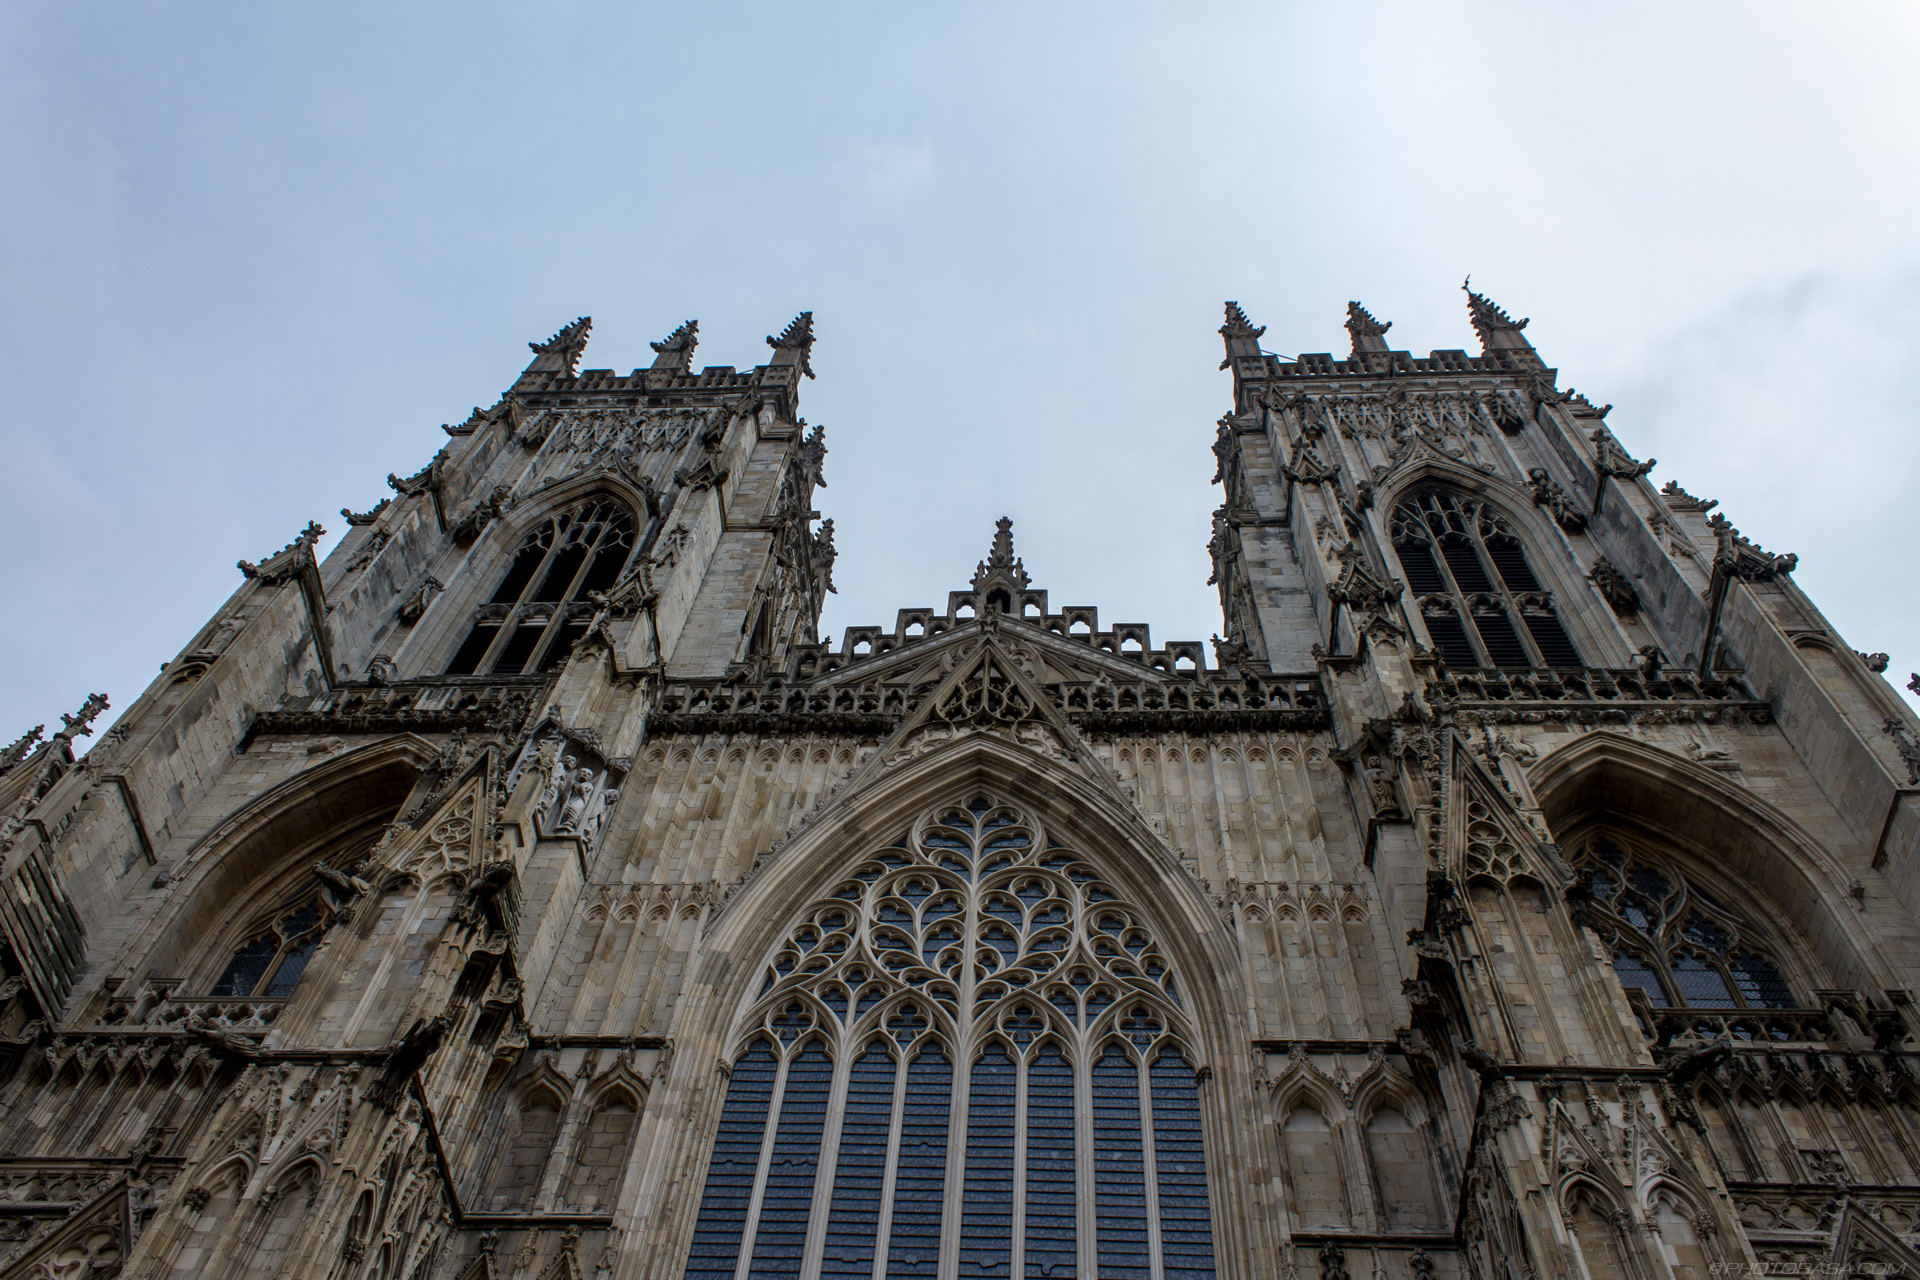 http://photorasa.com/places/yorkminster-cathedral/attachment/towers-above-entrance/